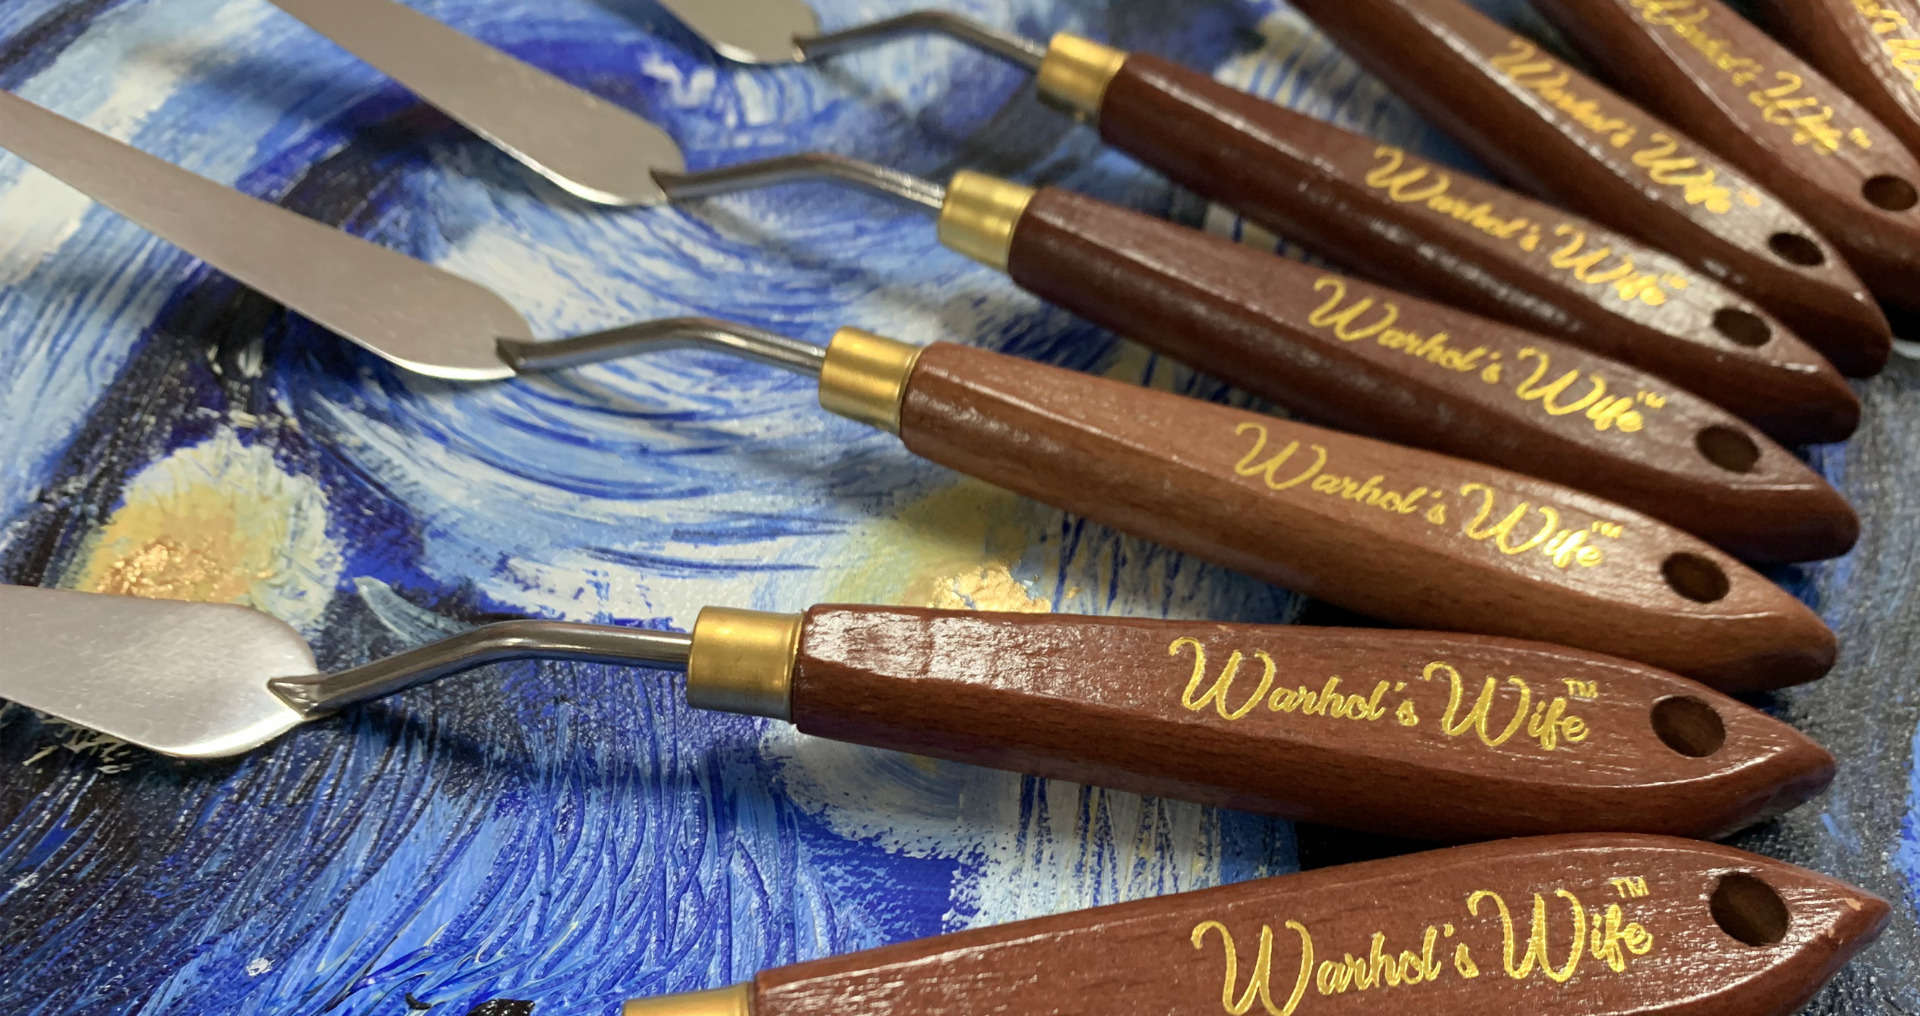 Warhol's Wife Palette Knife Set